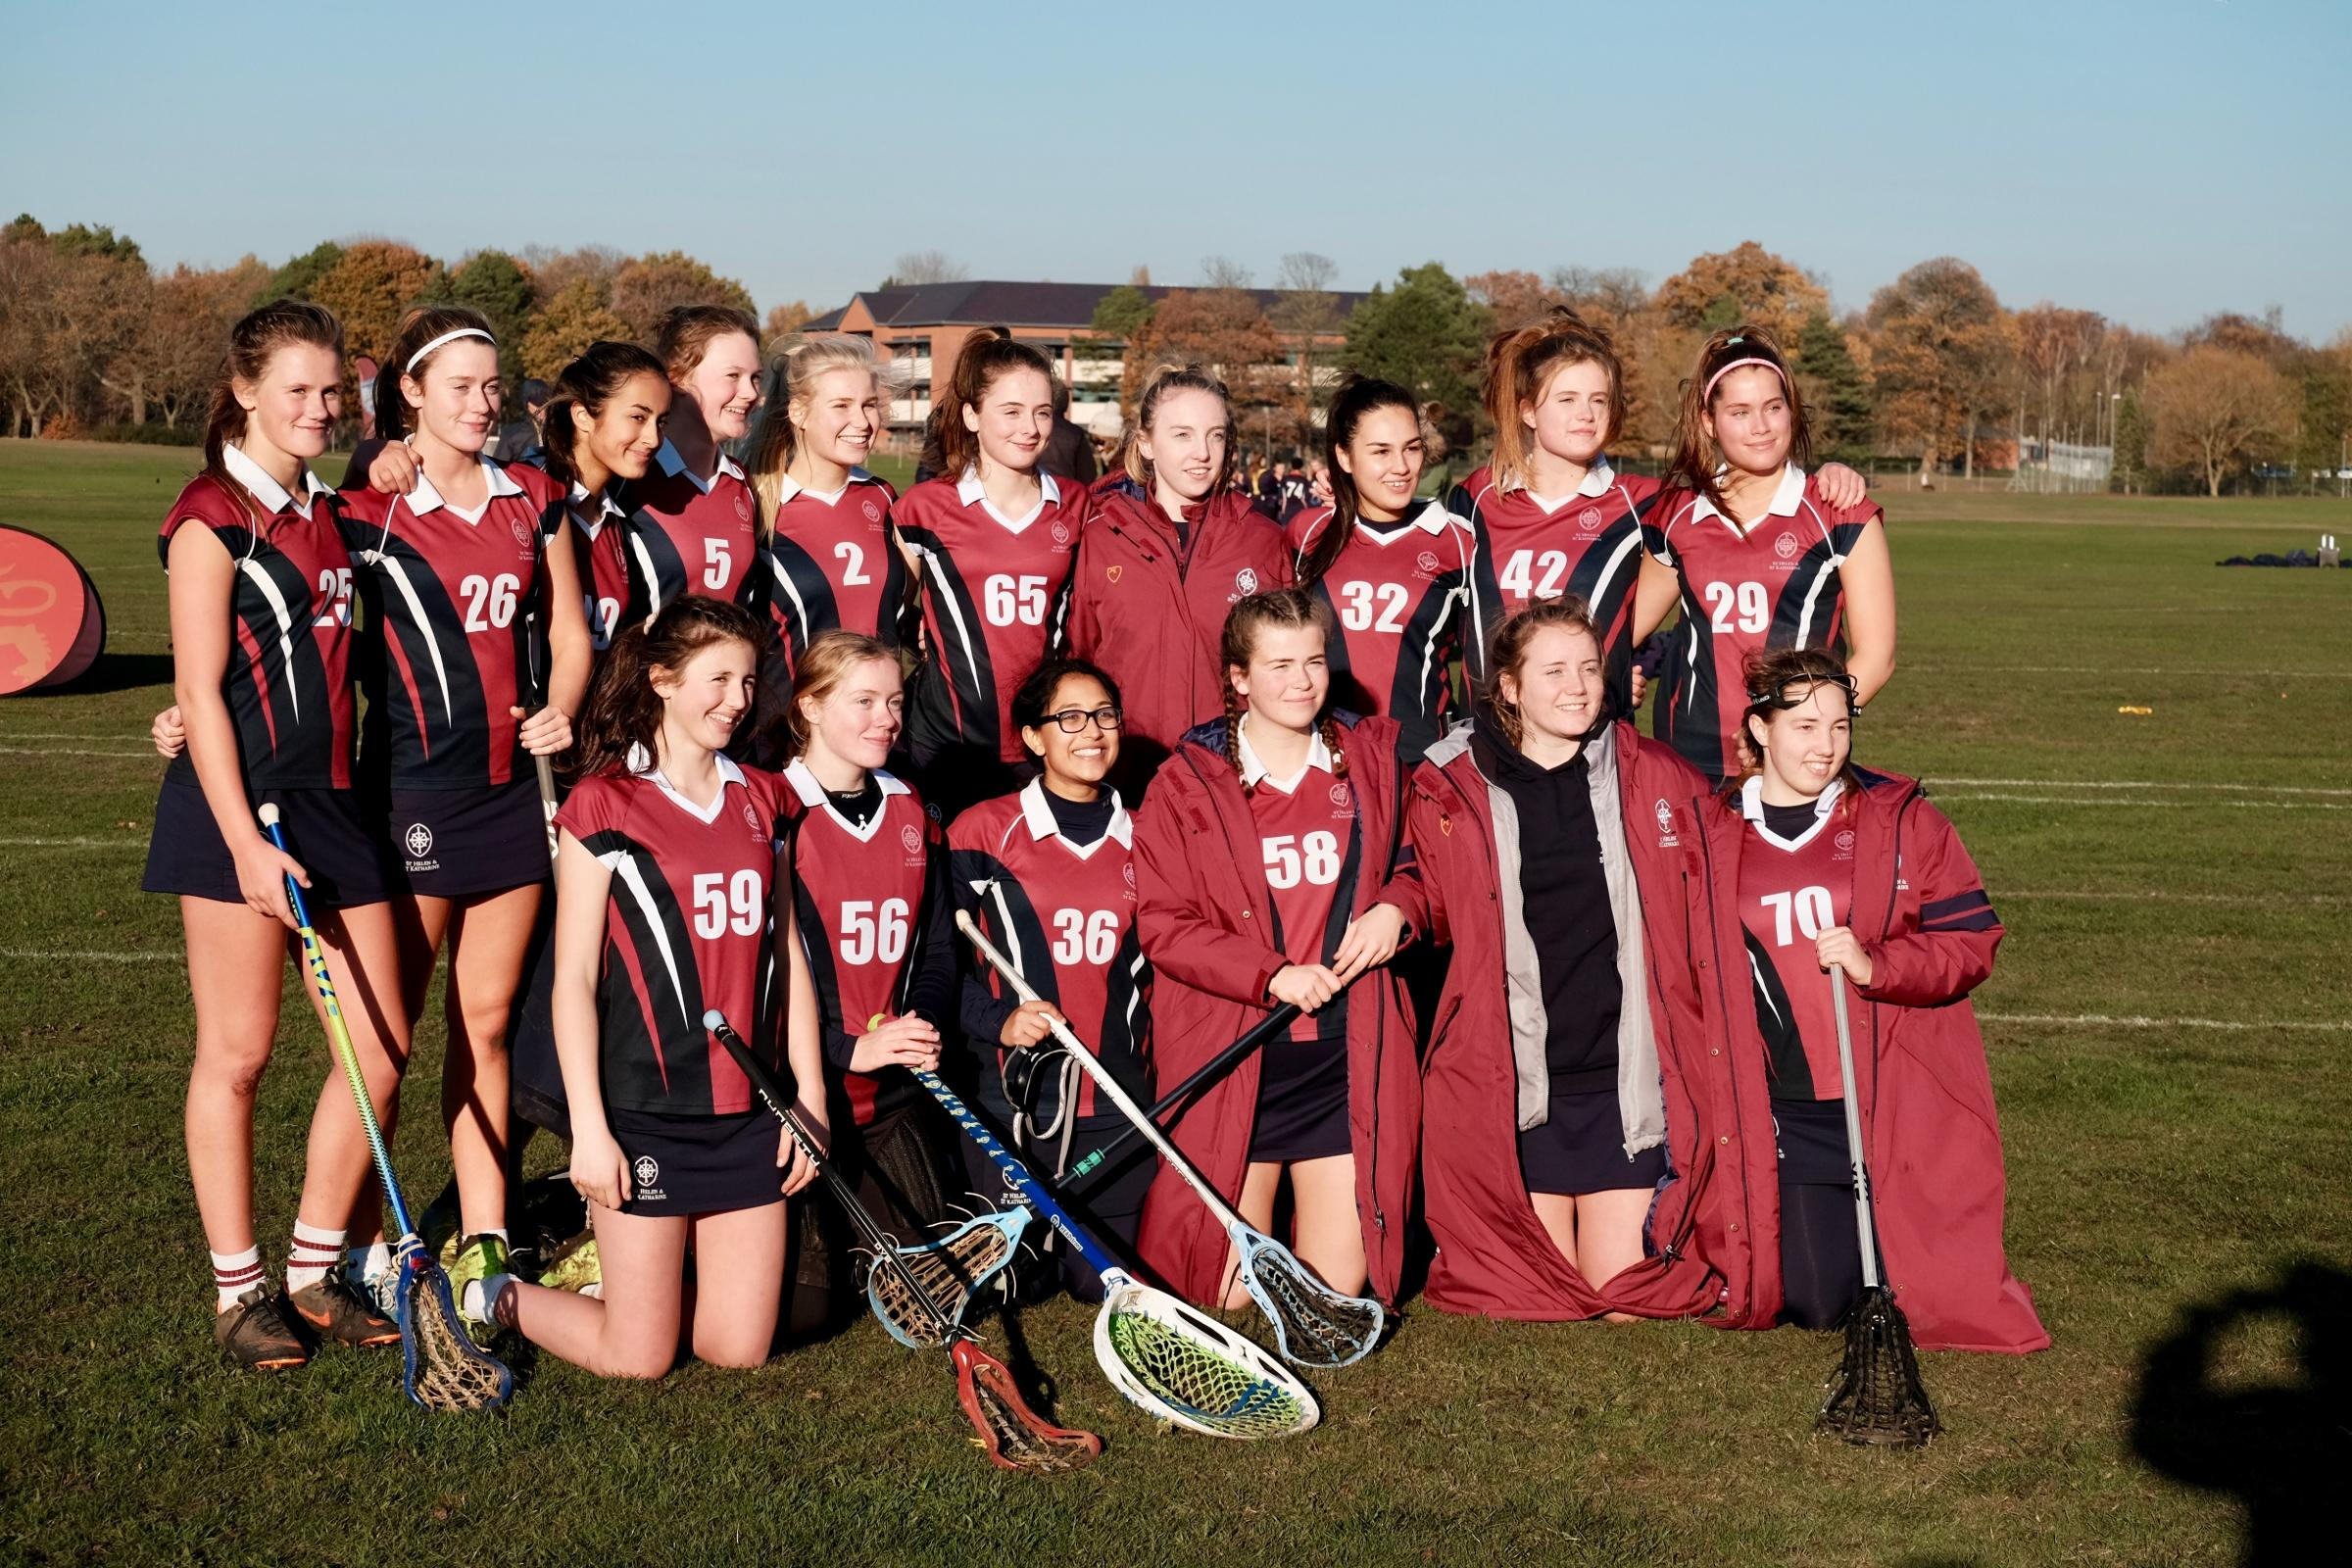 St Helen and St Katharine's senior squad at the England Lacrosse Challenge Cup event